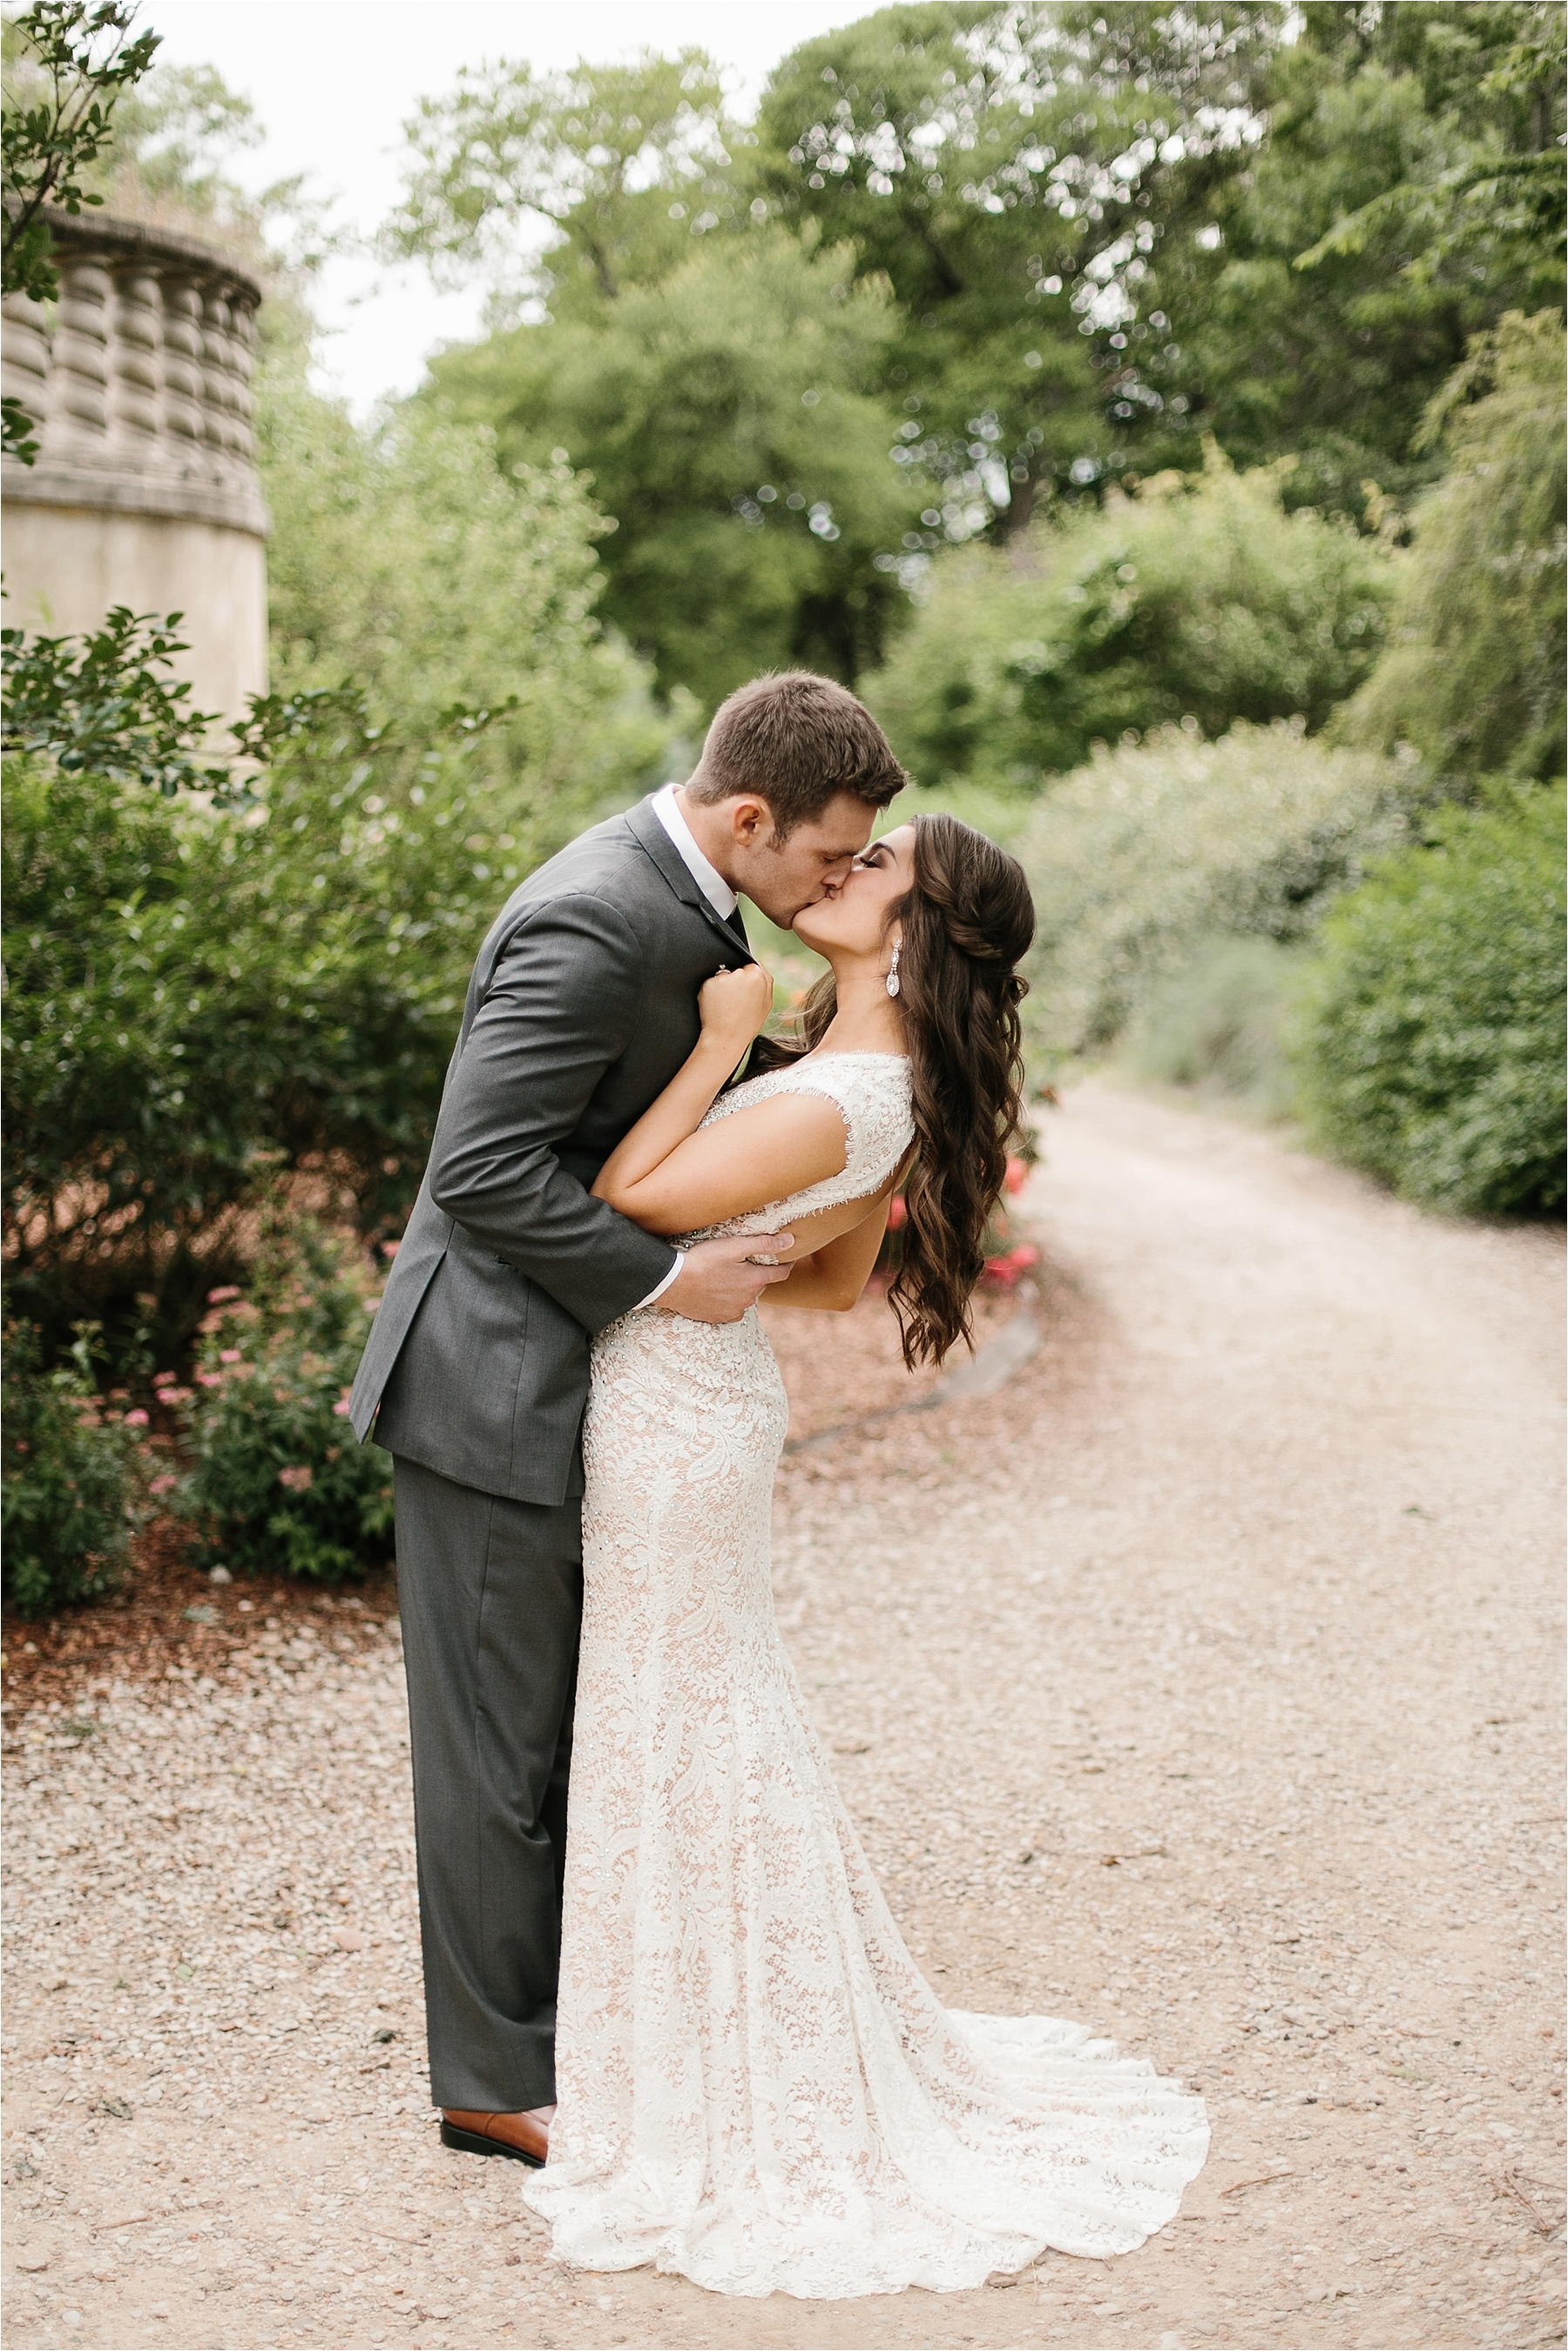 Devyn + Caden __ a Dallas Arboretum Garden Style Wedding by North Texas Wedding Photographer Rachel Meagan Photography __ 032